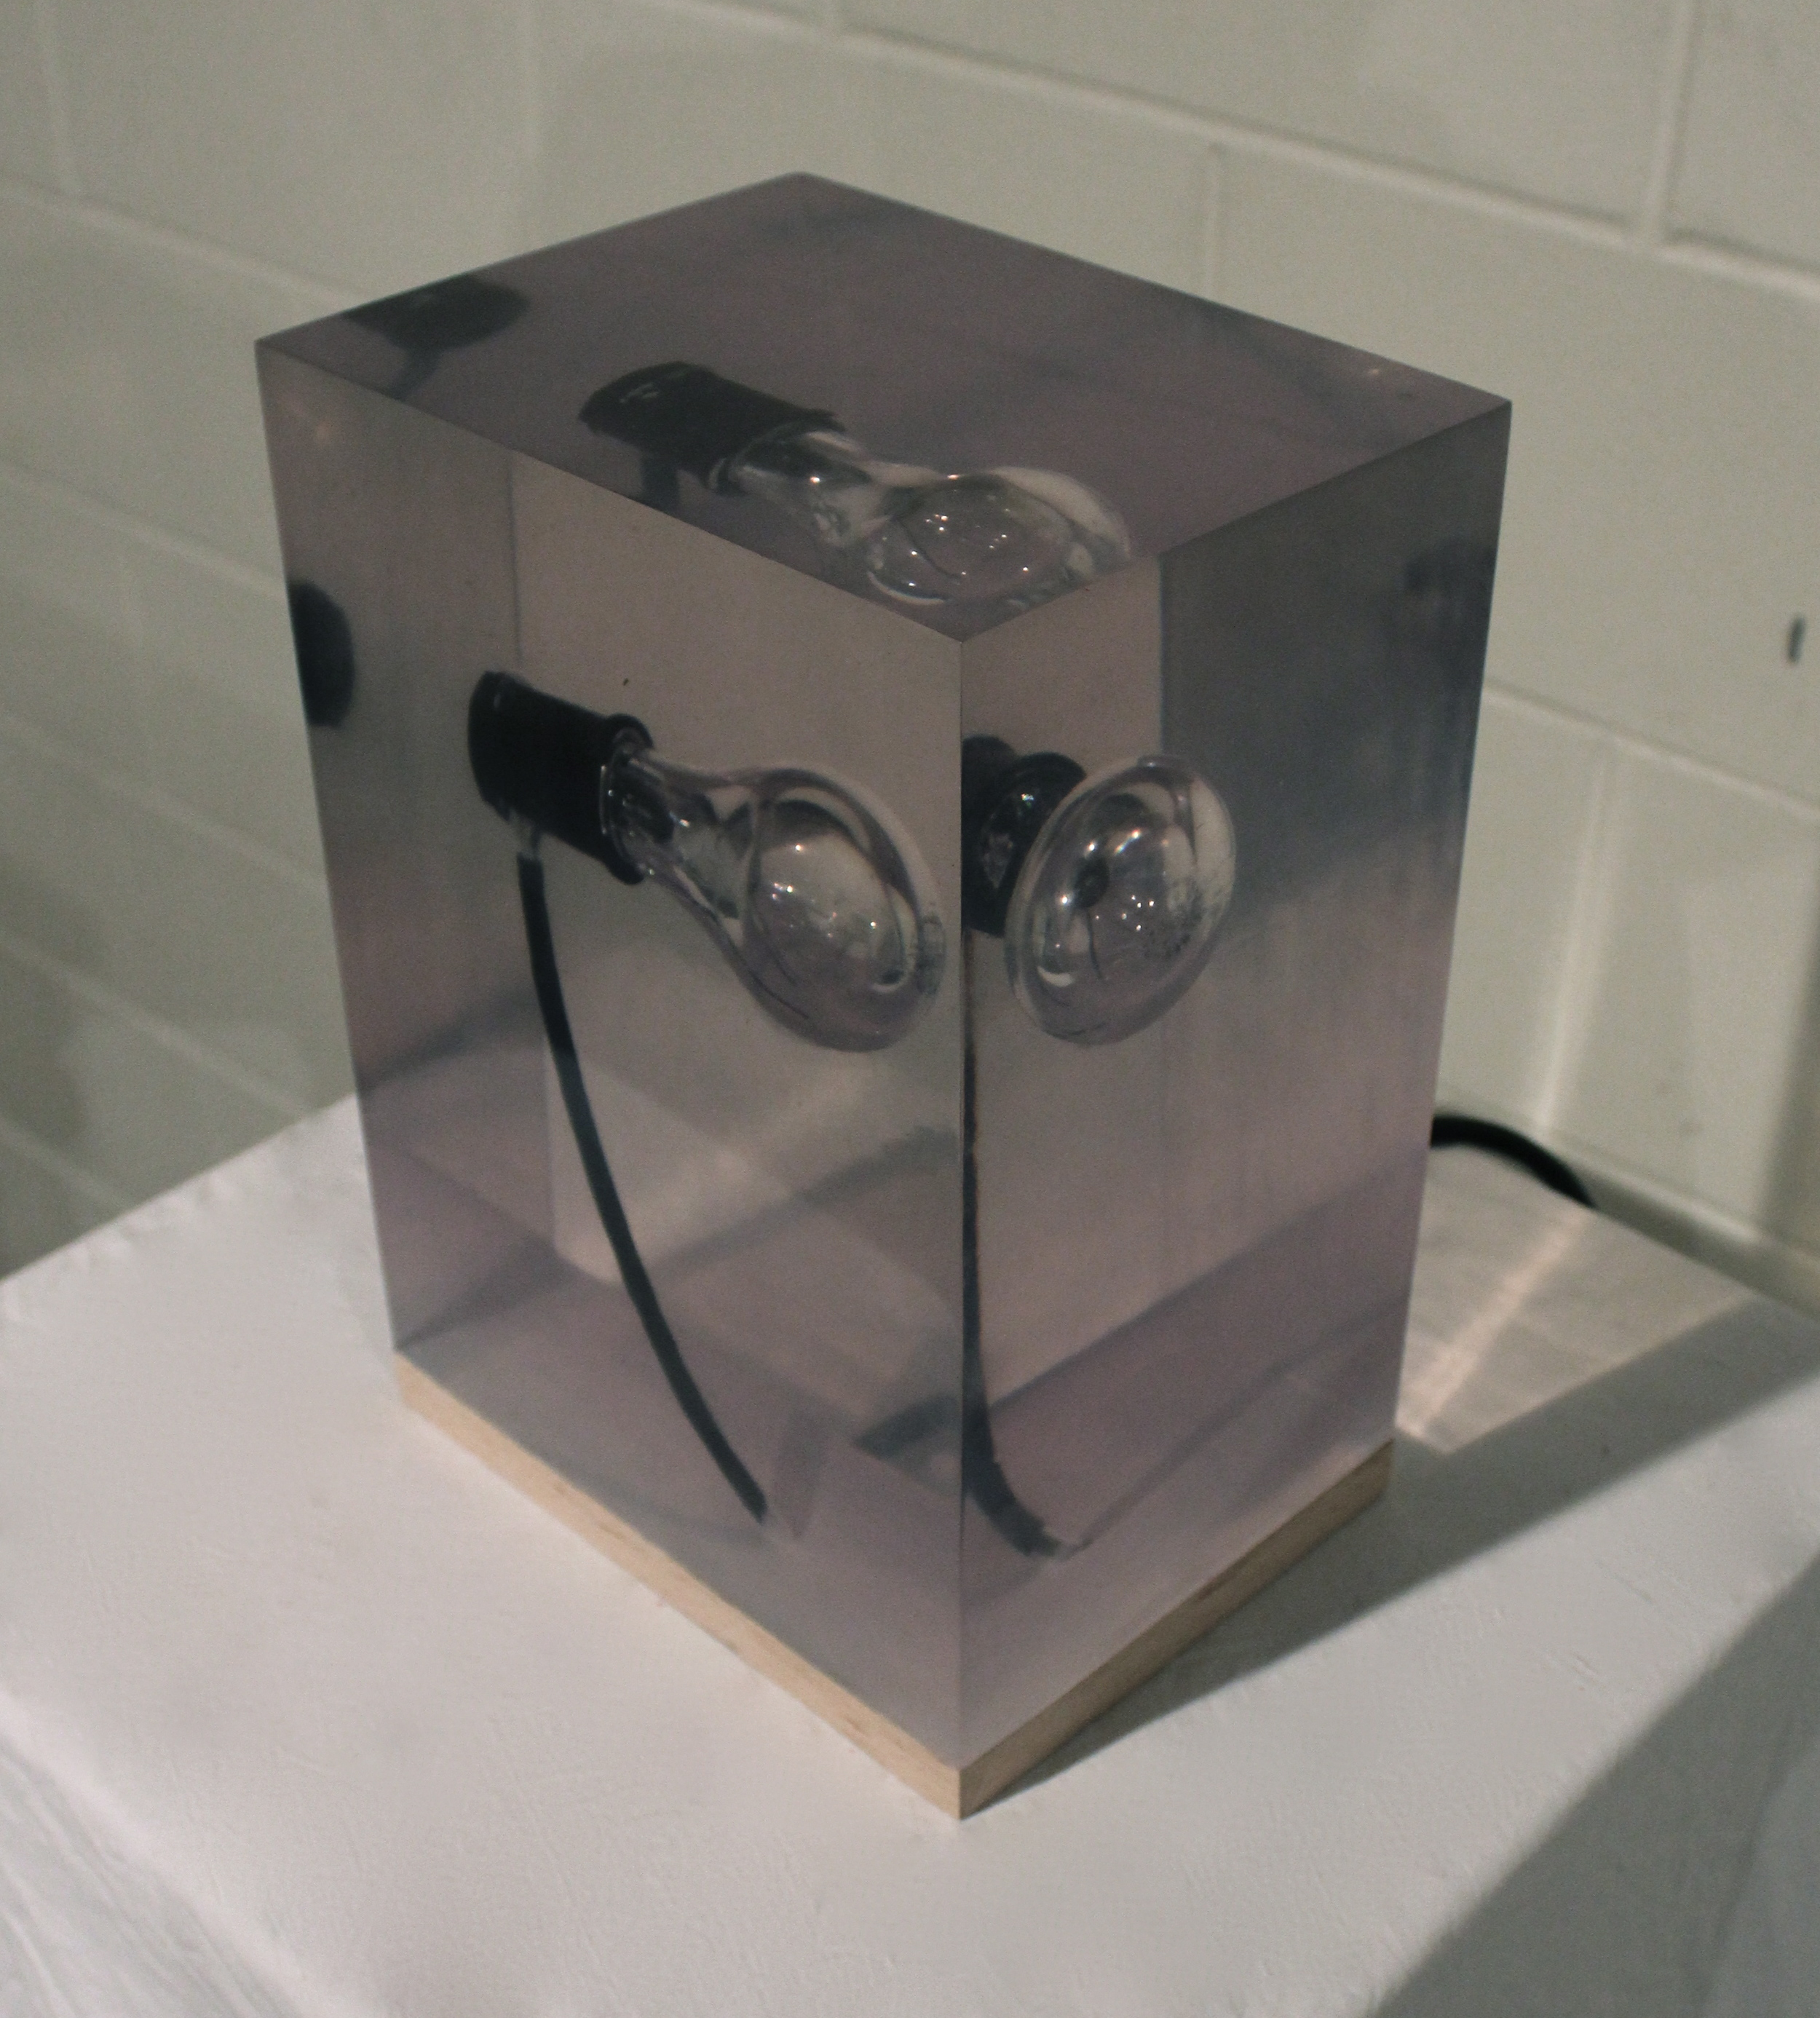 Off On Off. 2011. Cast and polished polyester, lighbulb, electrical cord, oak base.